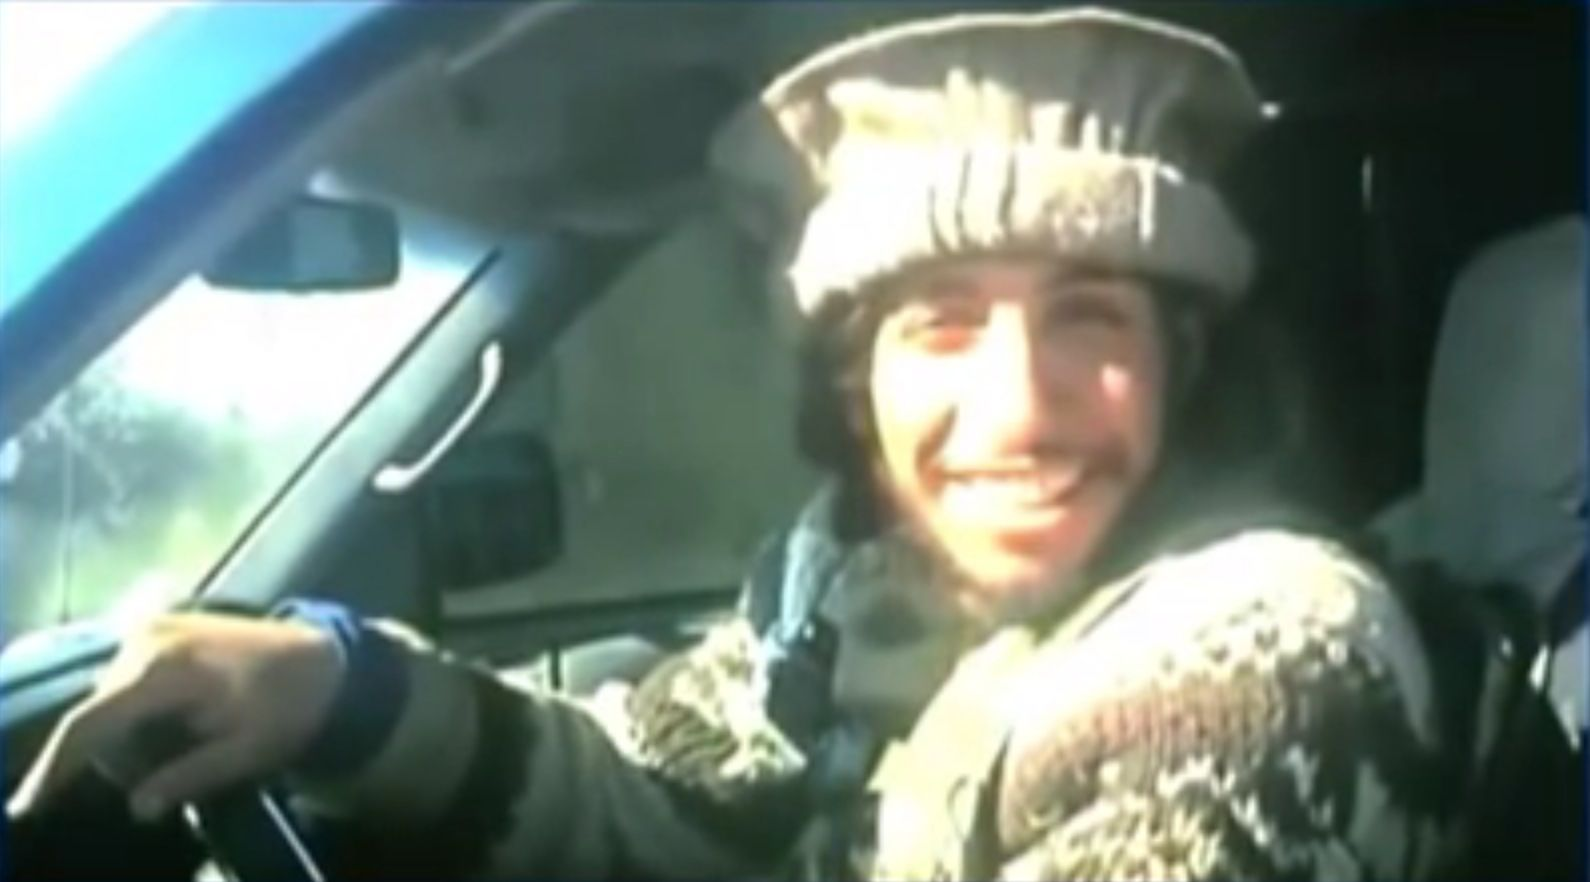 Abdelhamid Abaaoud / Abou Omar Soussi